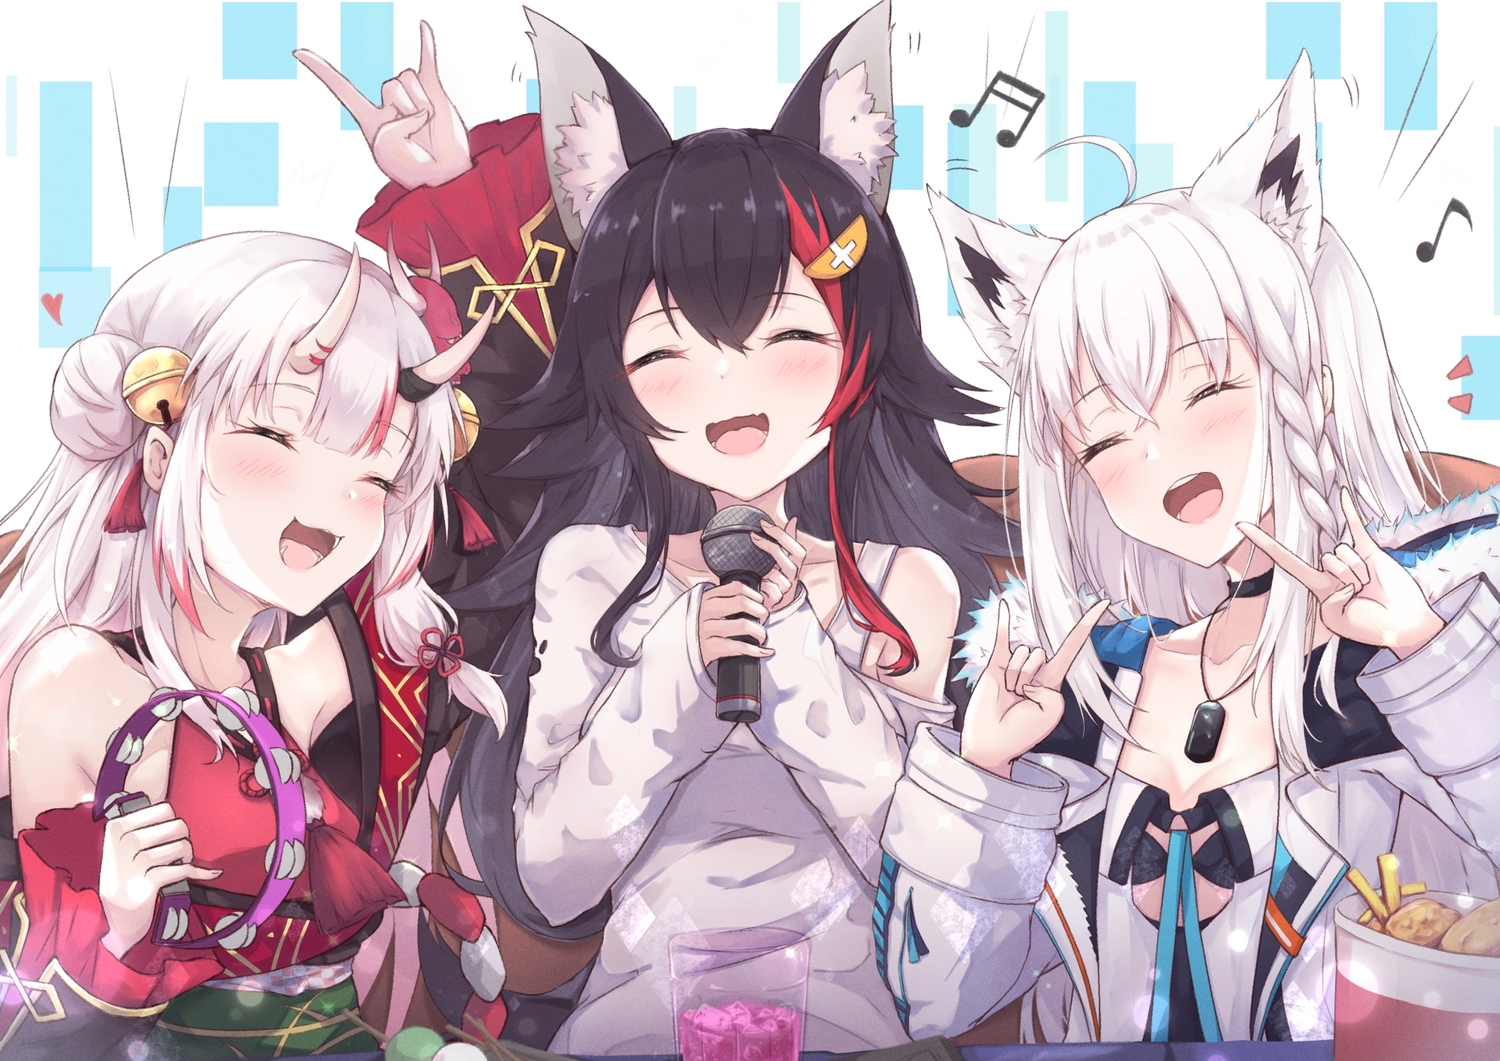 animal_ears black_hair braids choker drink fang food foxgirl hakuya_(white_night) hololive horns instrument long_hair microphone music nakiri_ayame necklace ookami_mio shirakami_fubuki white_hair wolfgirl